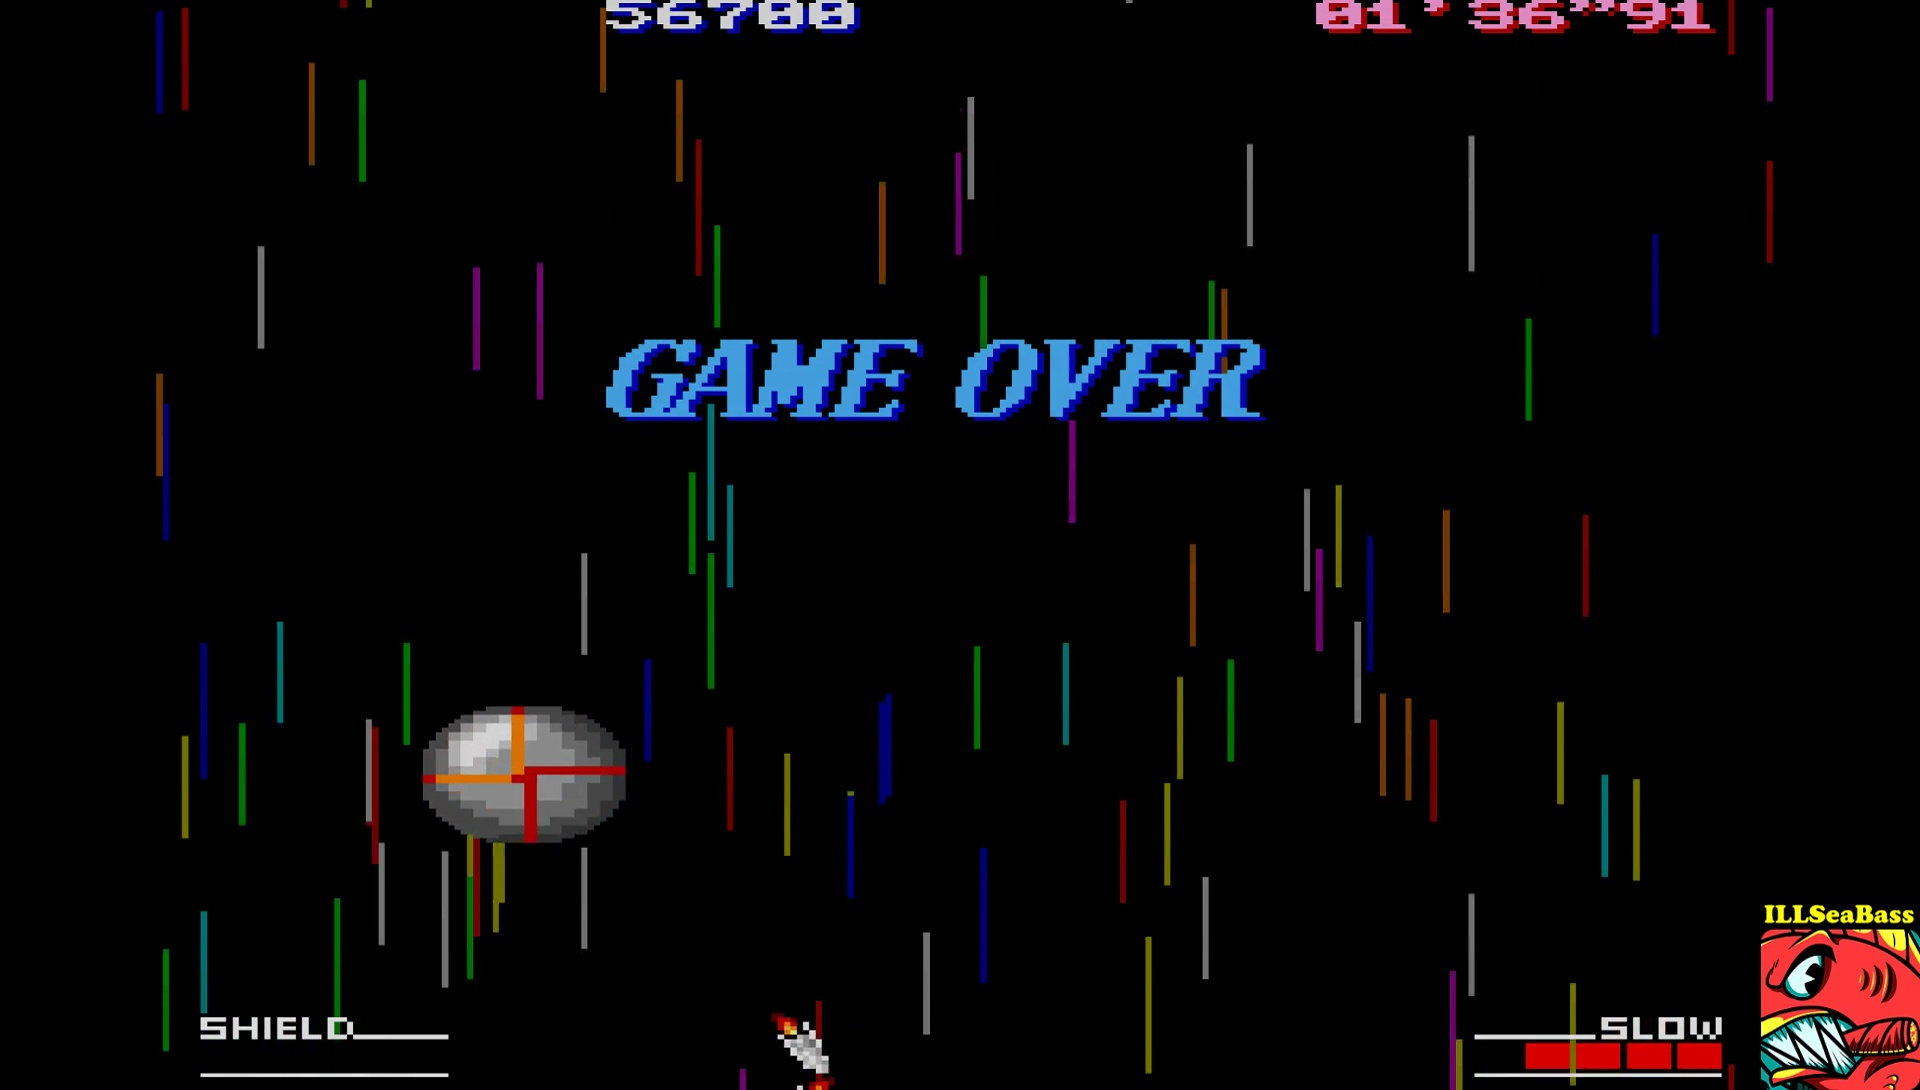 ILLSeaBass: Silsteel: Score Attack [Easy] (Sharp X68000 Emulated) 56,700 points on 2017-07-01 21:51:40